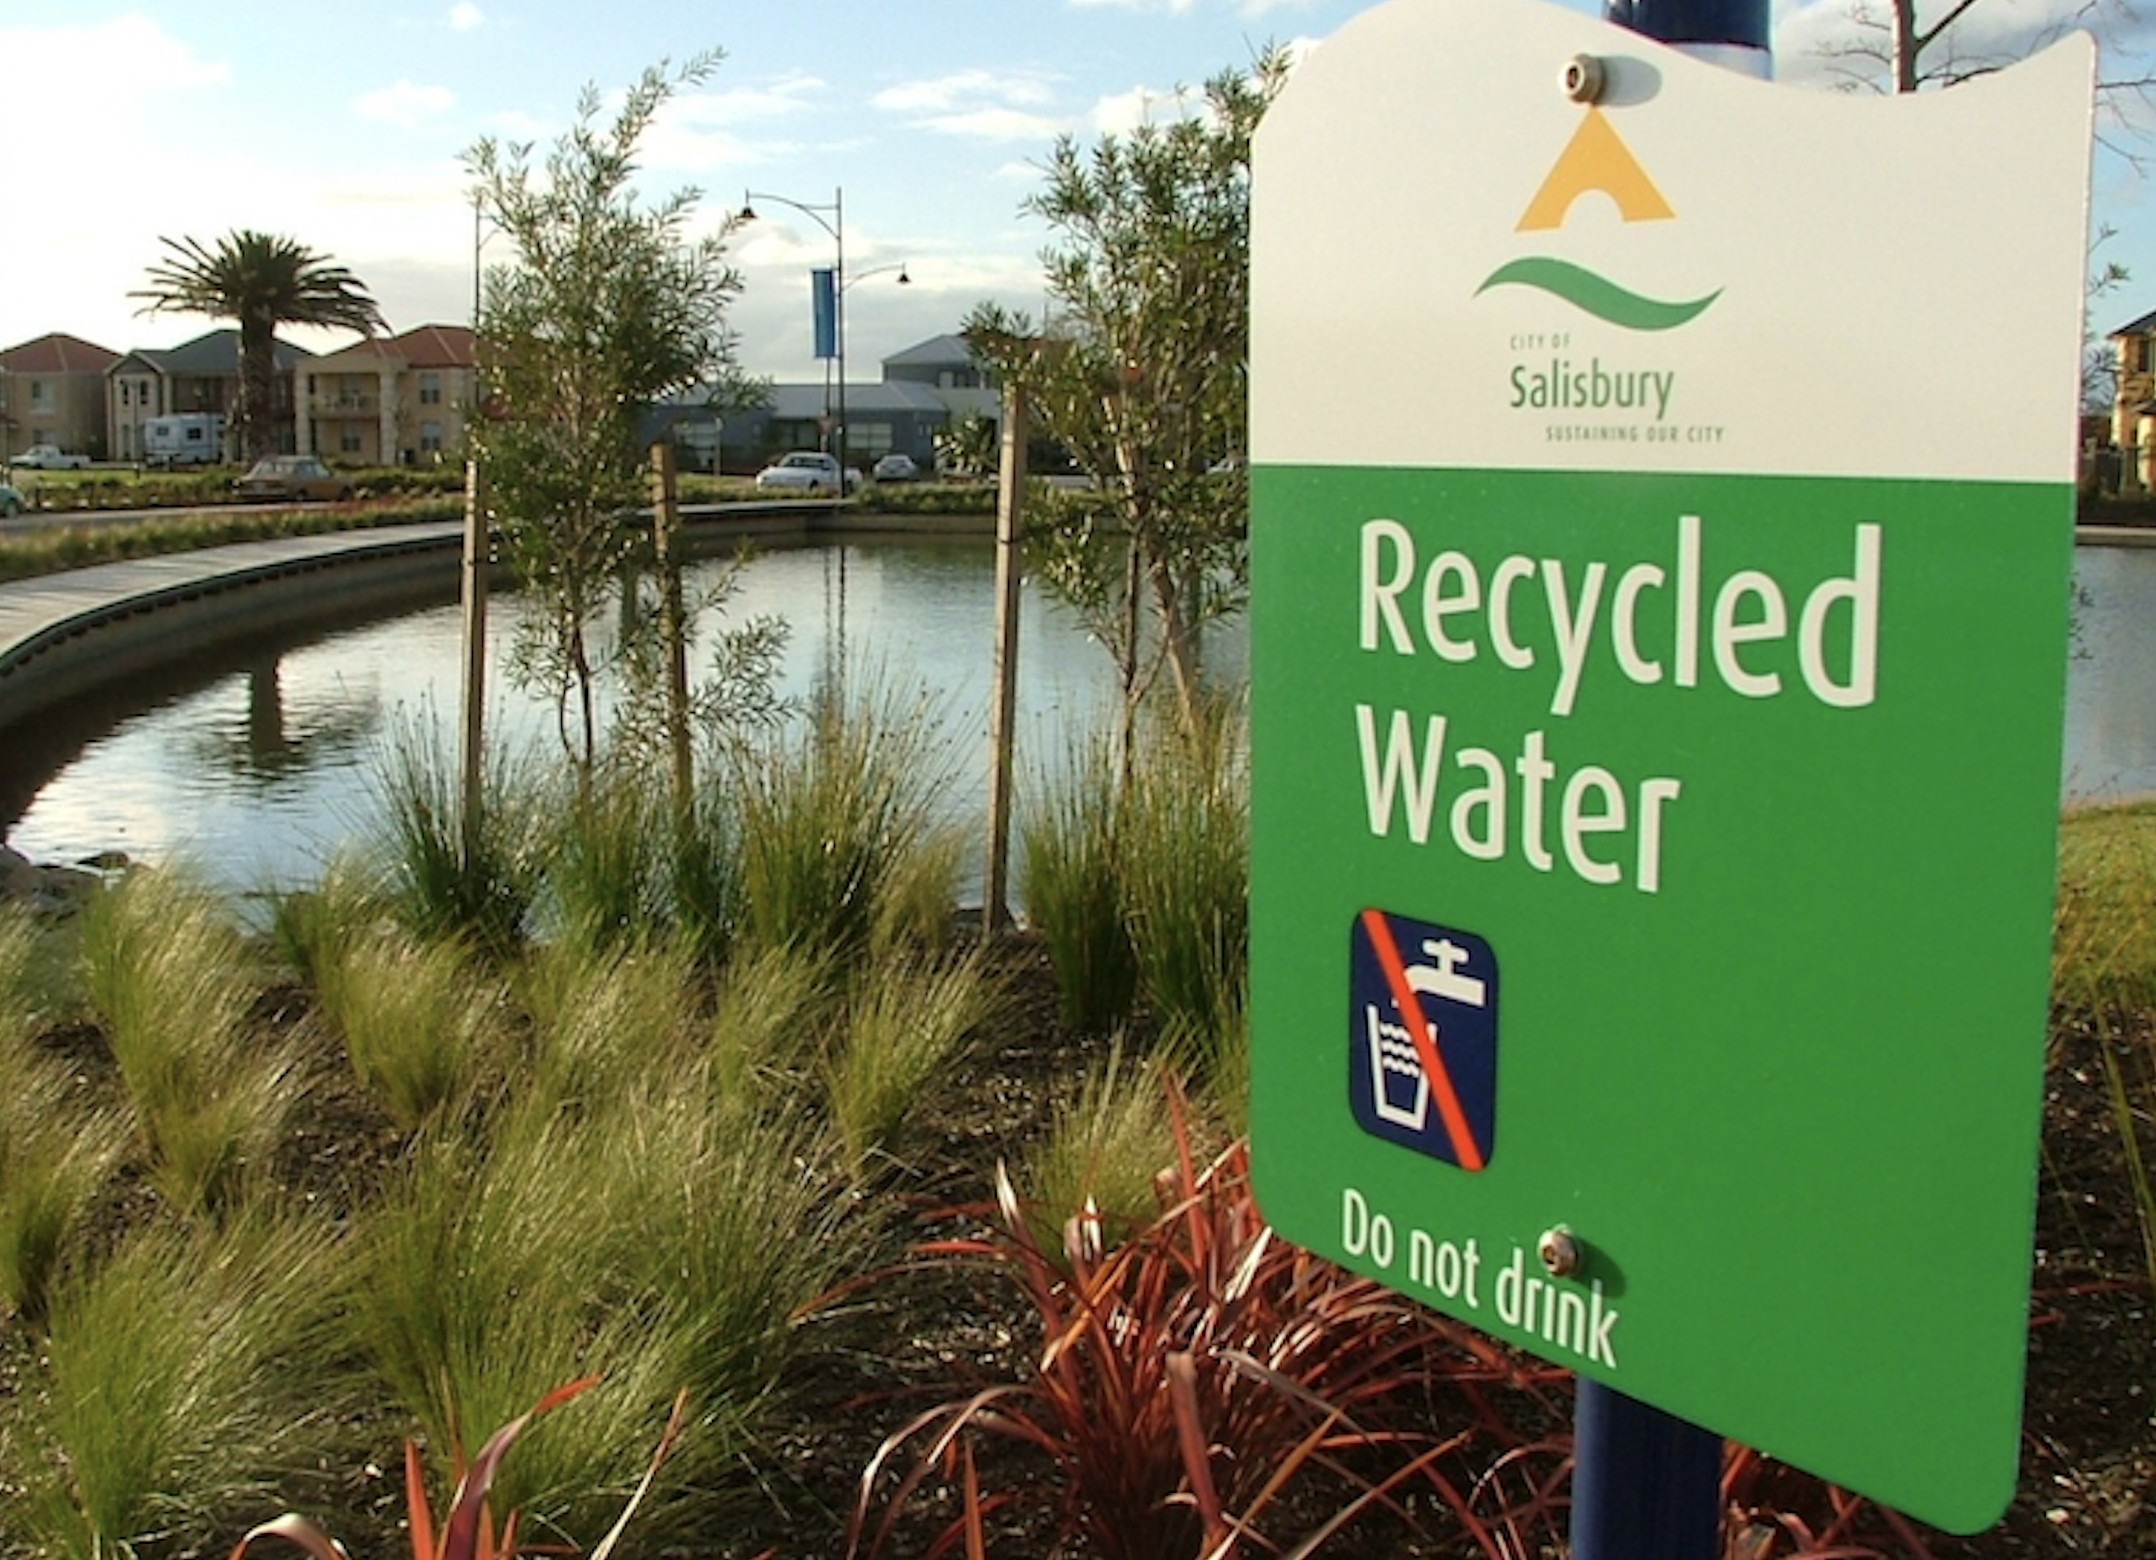 stealing water - recycled water sign